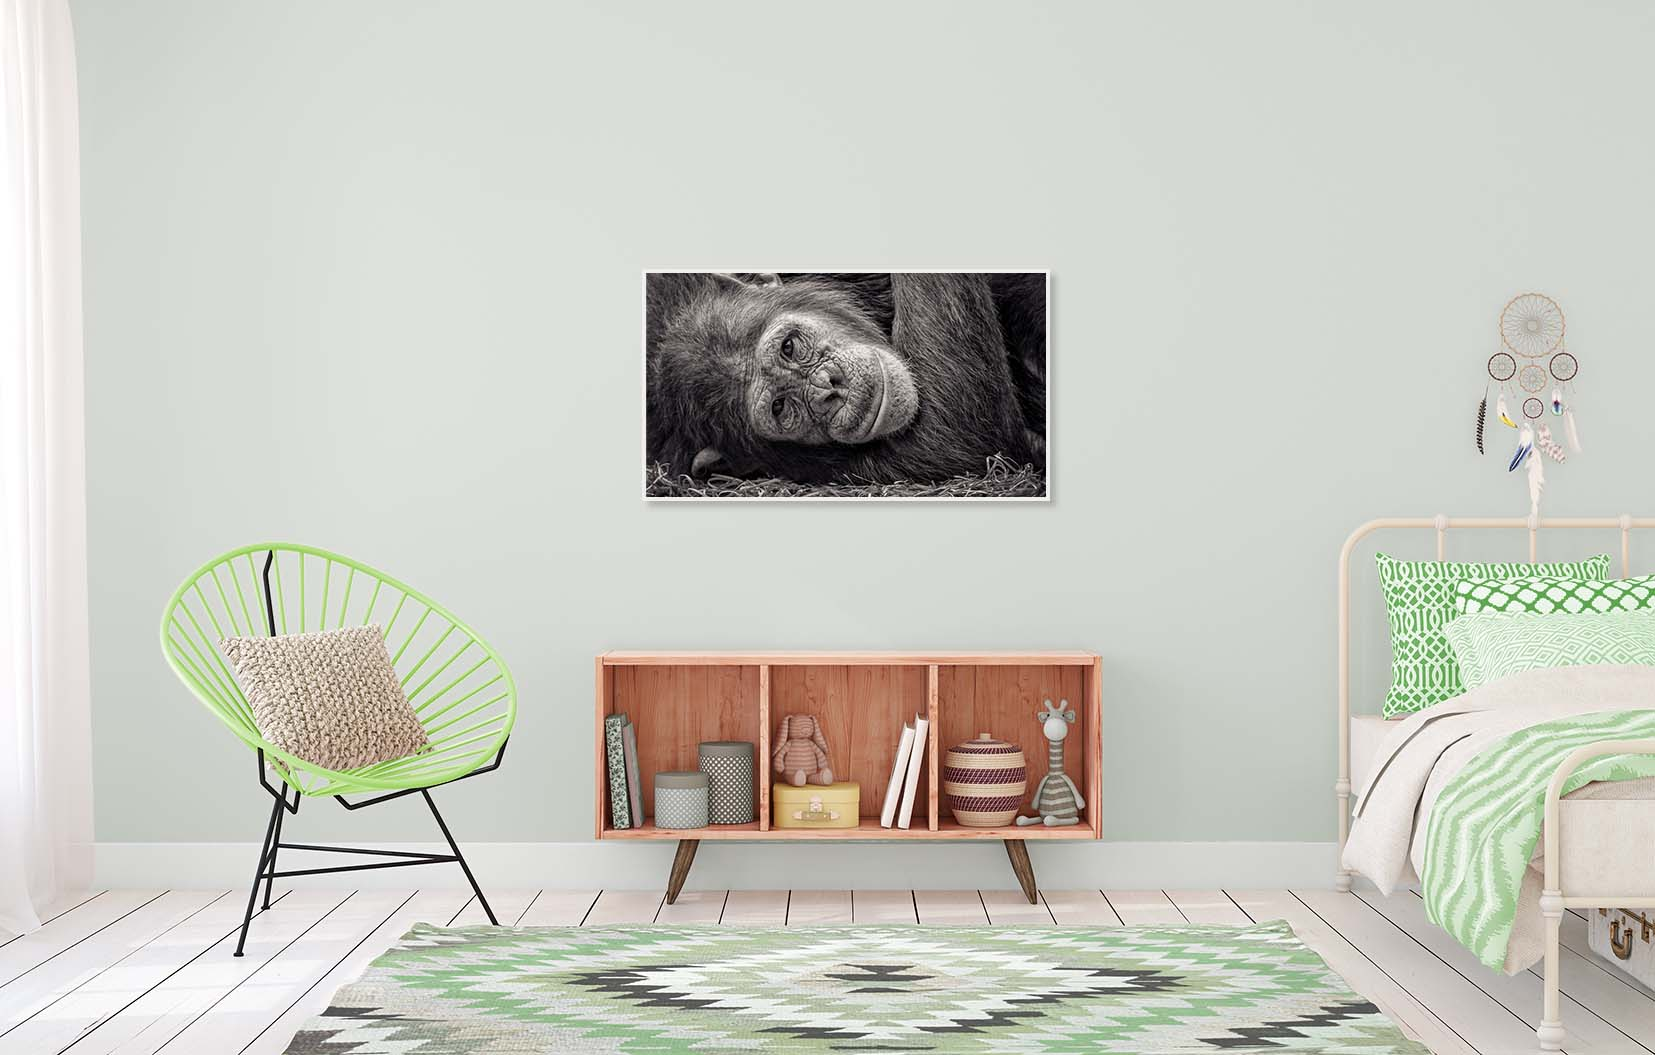 Black and white portrait of a chimp at rest, shown in a child's bedroom. Limited edition photographic print by fine art photographer Paul Coghlin.